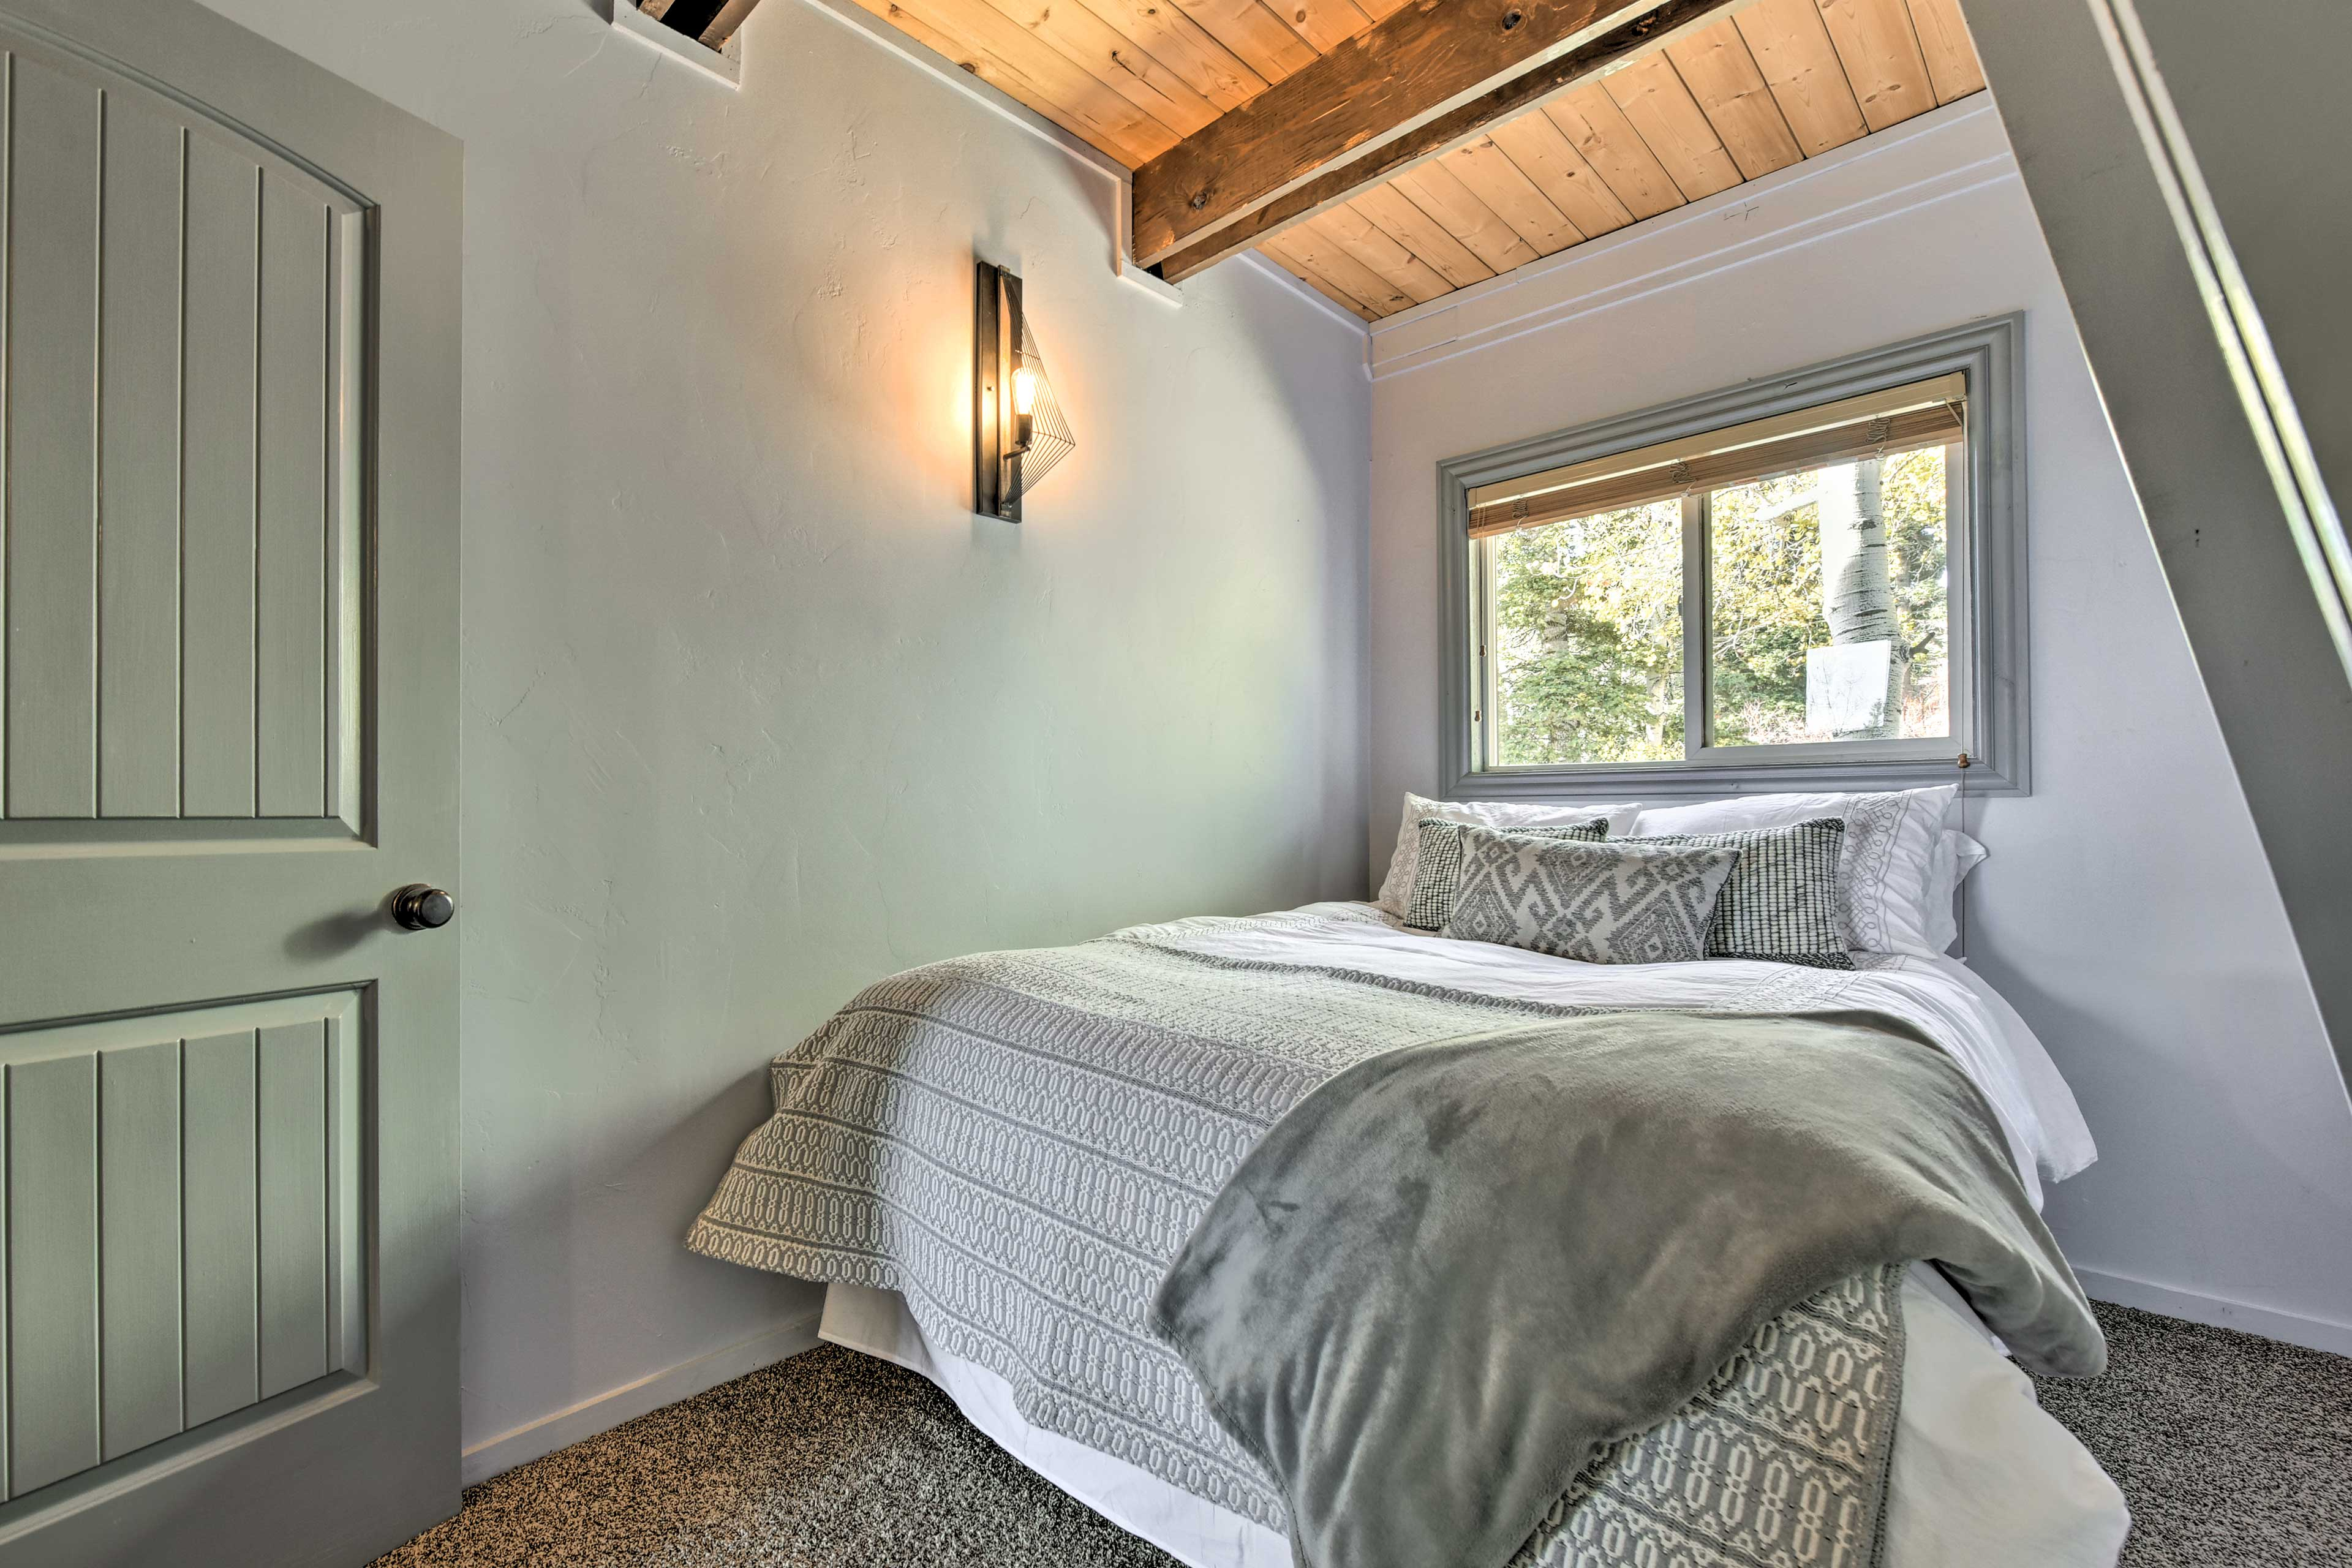 This second bedroom also houses a queen-sized bed.